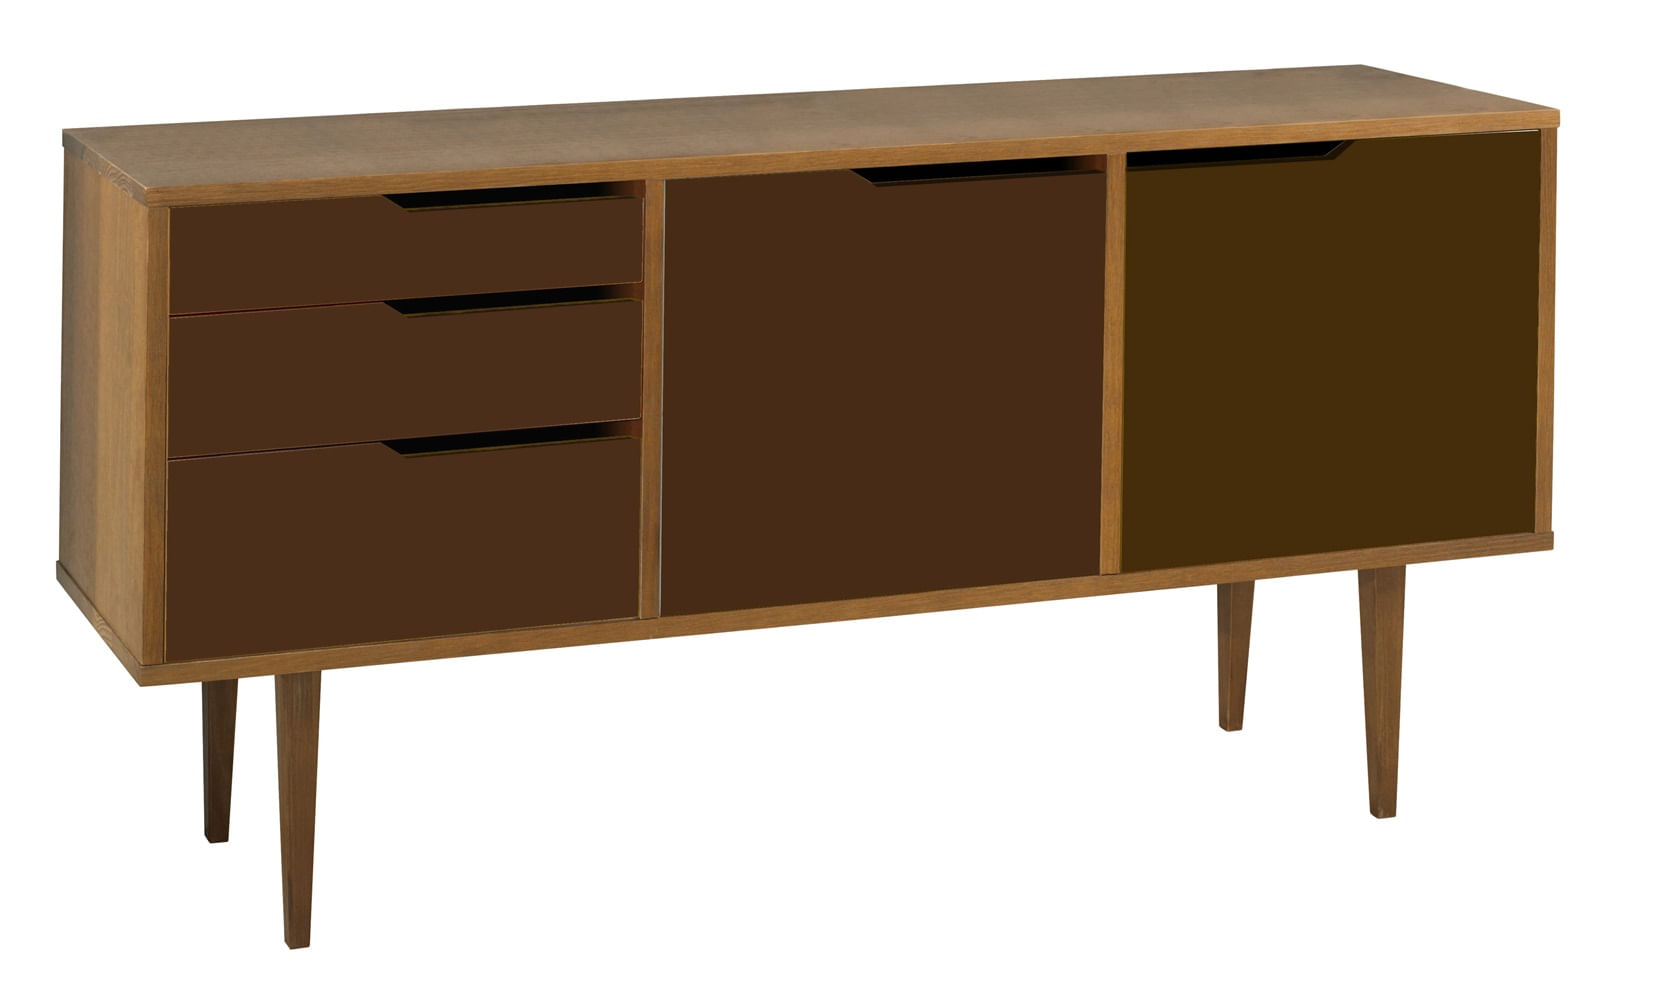 Buffet Strauss Amendoa 3 Gav 2 Port Cor Marrom - 25394